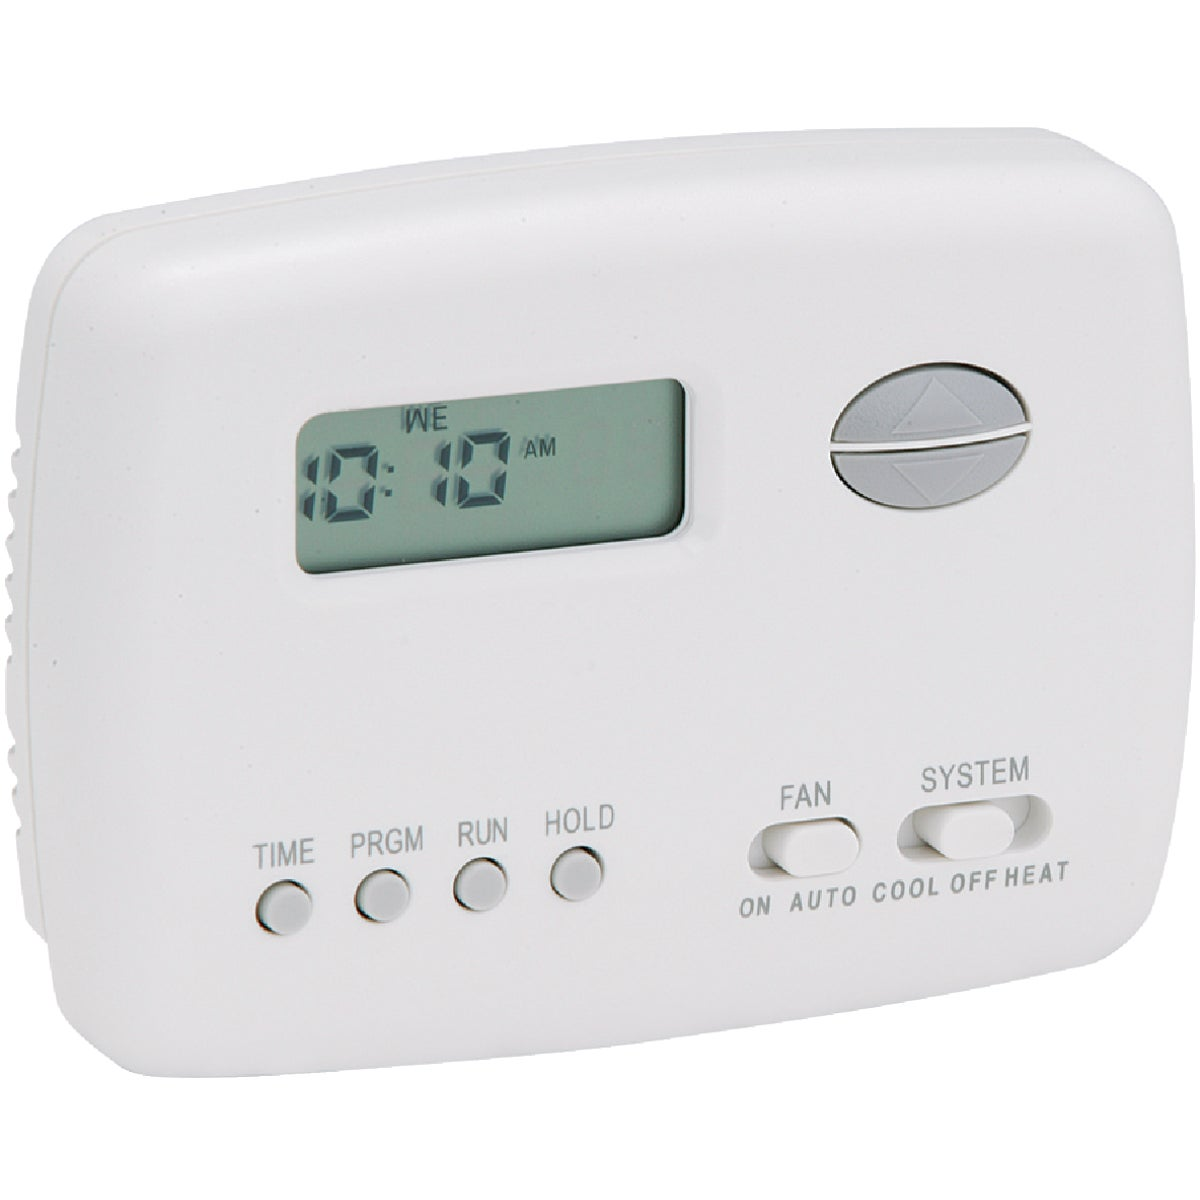 White-Rodgers/Emerson DIGITAL THERMOSTAT 474045